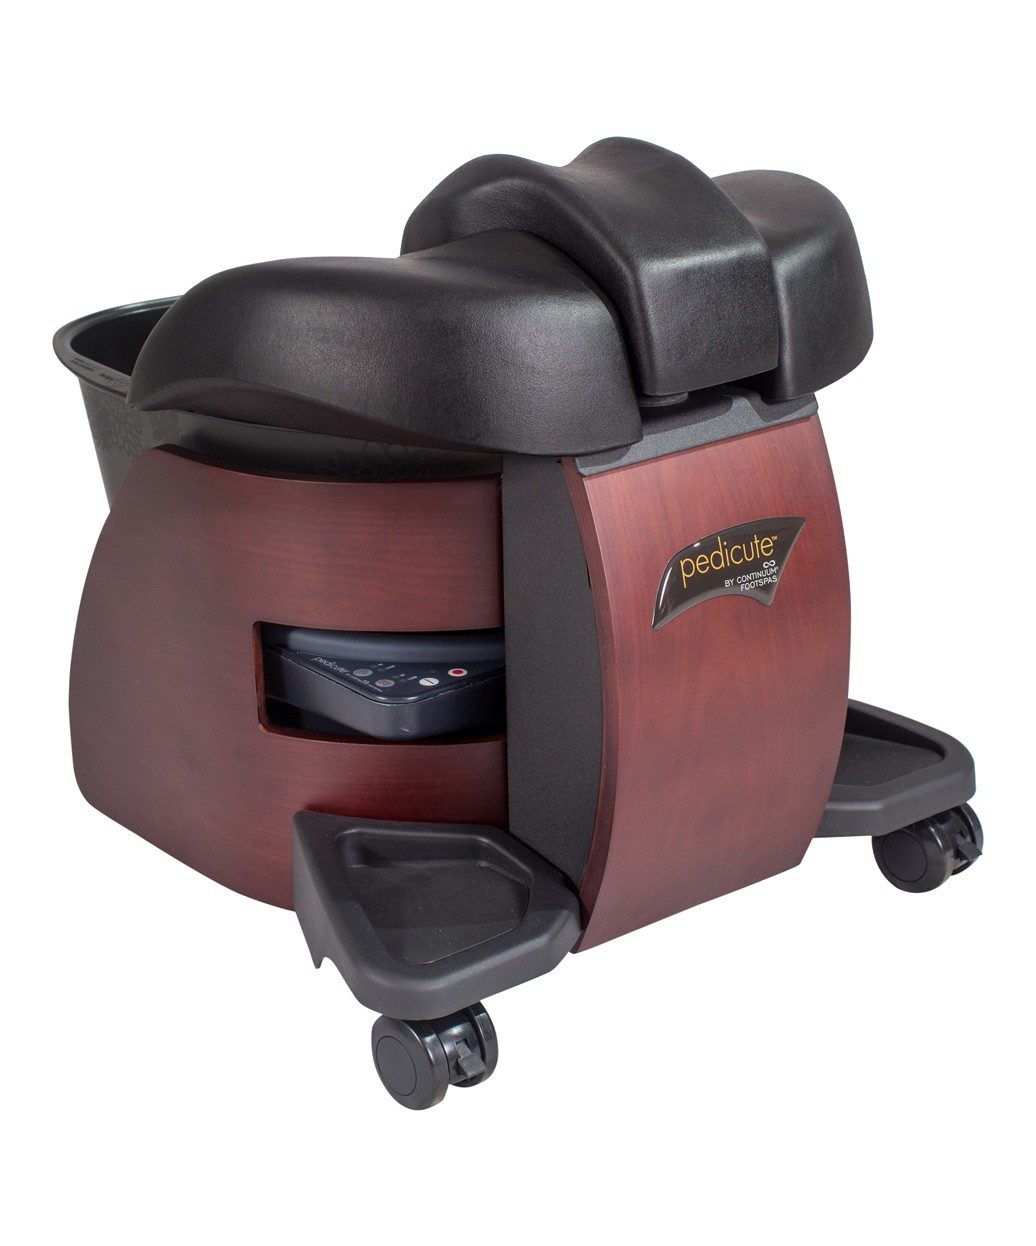 how much does a pedicure chair cost curved lift portable spa and jets continuum pedicute foot